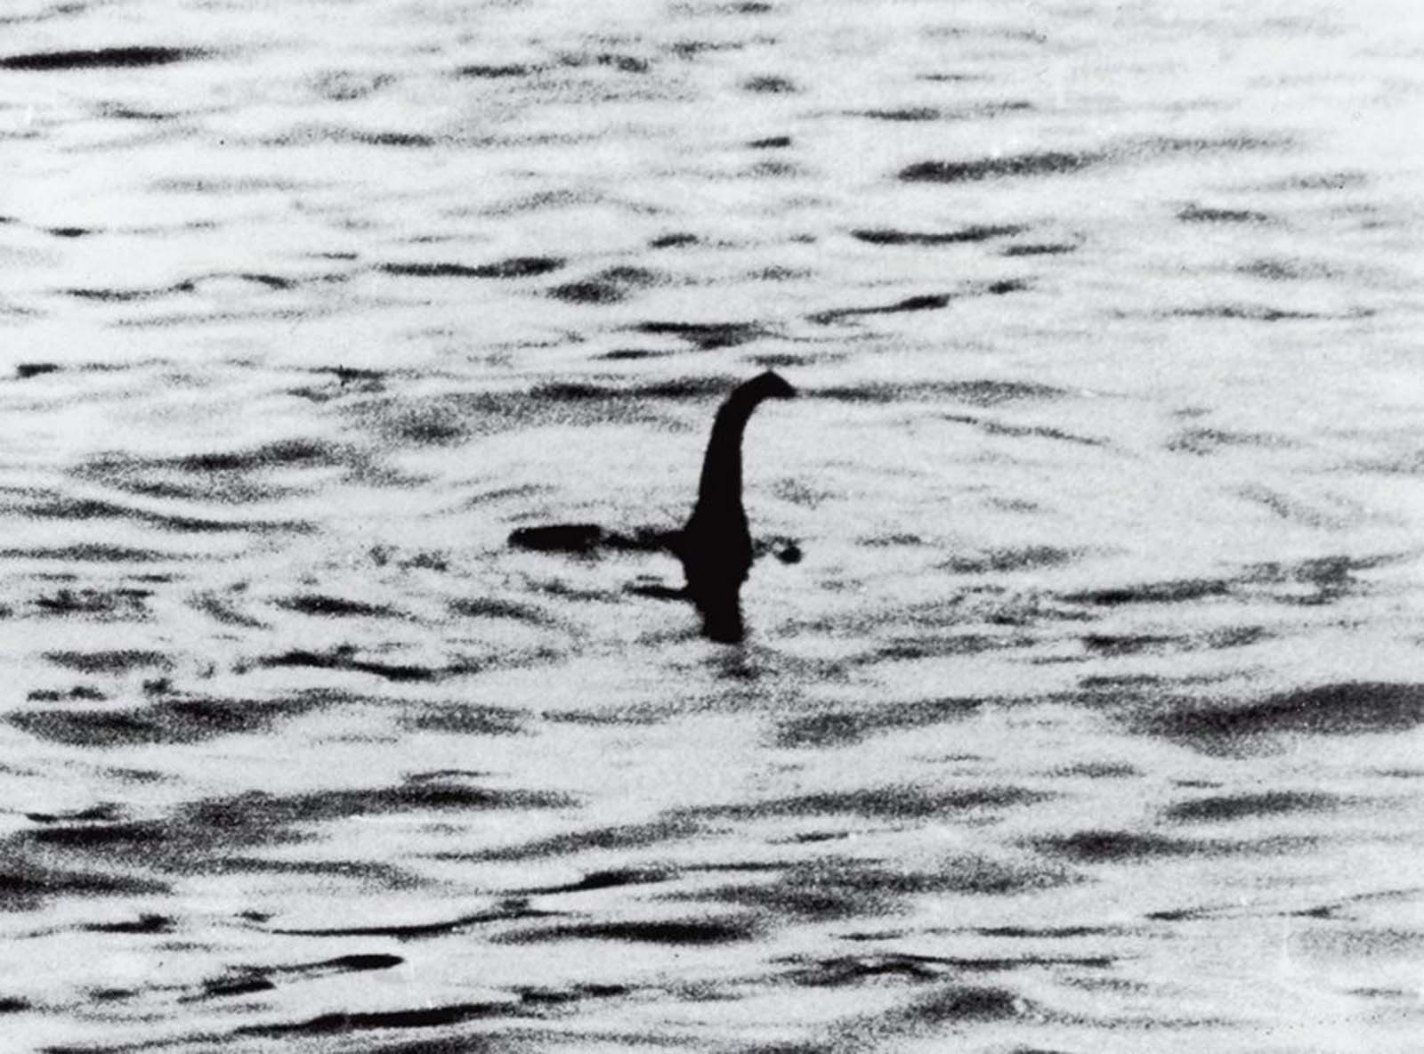 The Loch Ness Monster, Unknown, 1934